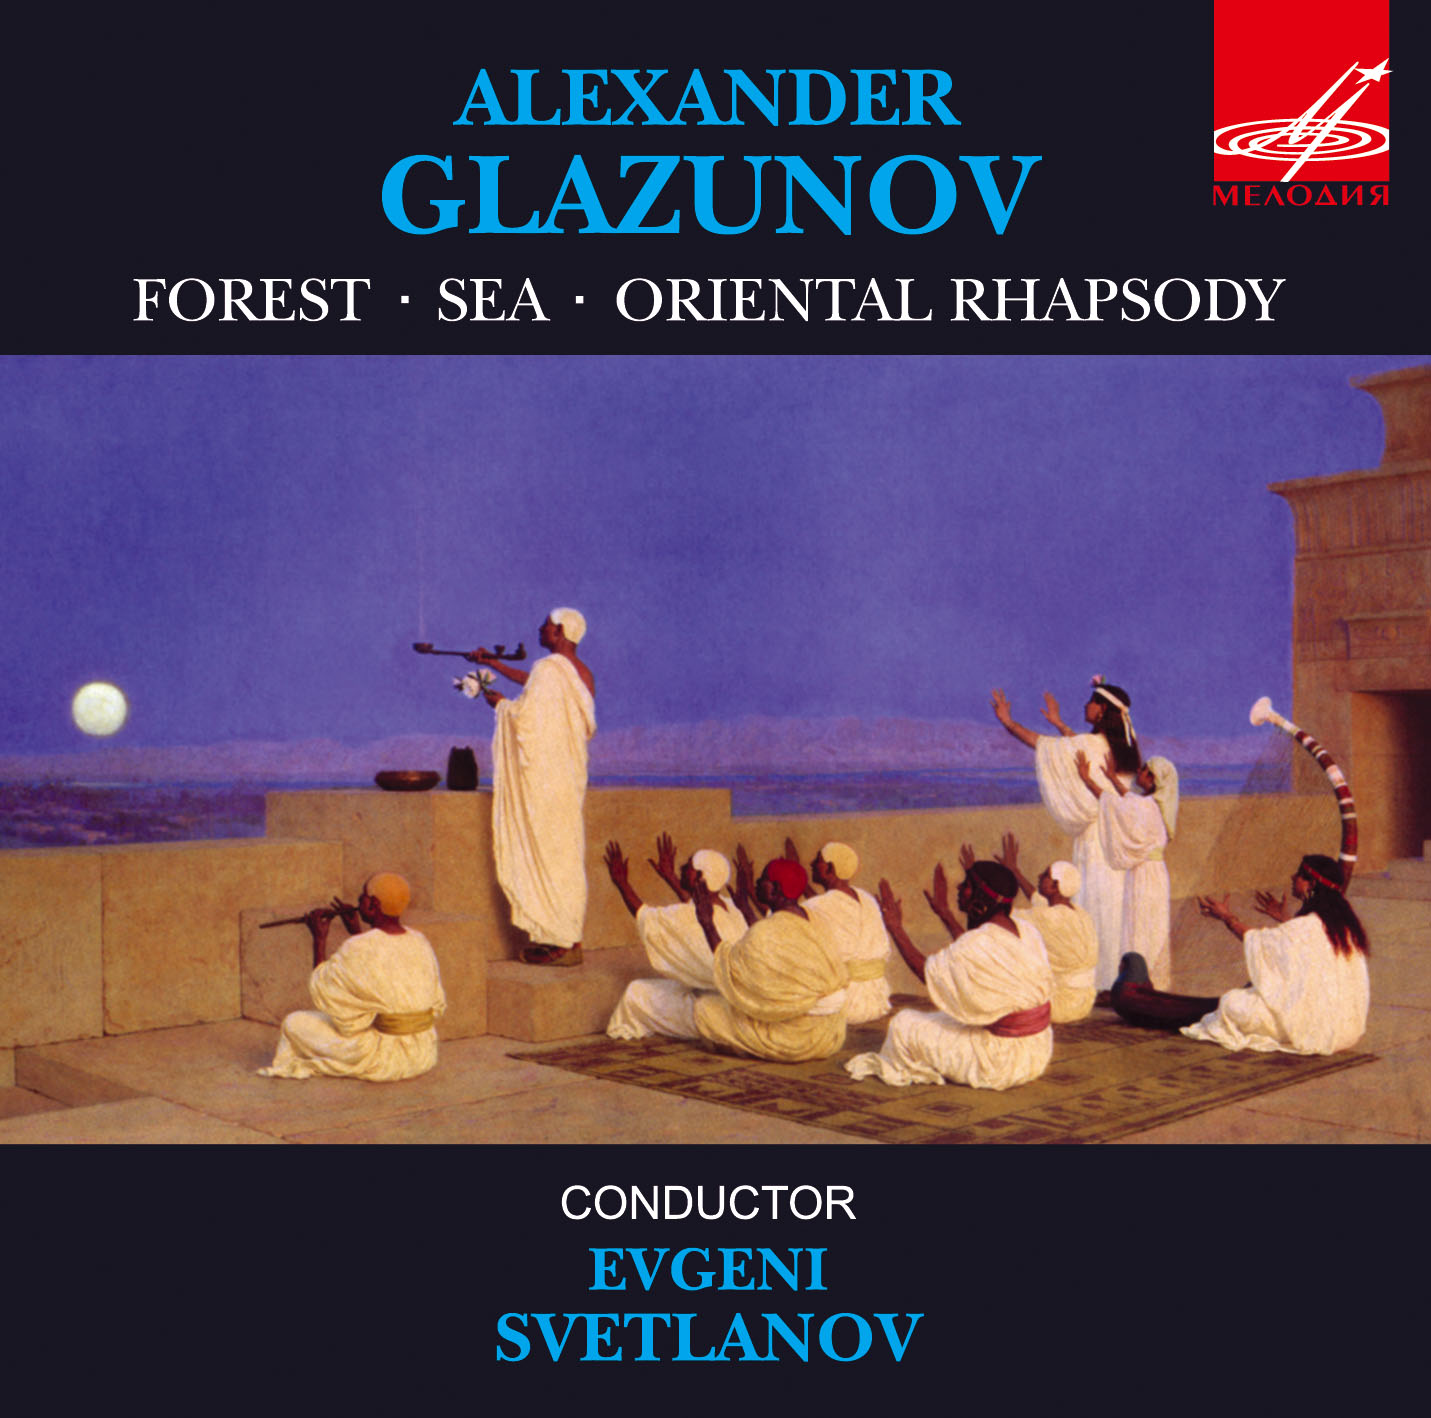 composer alexander glazunov his life and work essay Find alexander glazunov biography and history on allmusic - born in 1865 in st   circle, absorbed the procedures of greater european art music into his own  work  quantity after 1905, glazunov continued composing until the end of his  life.